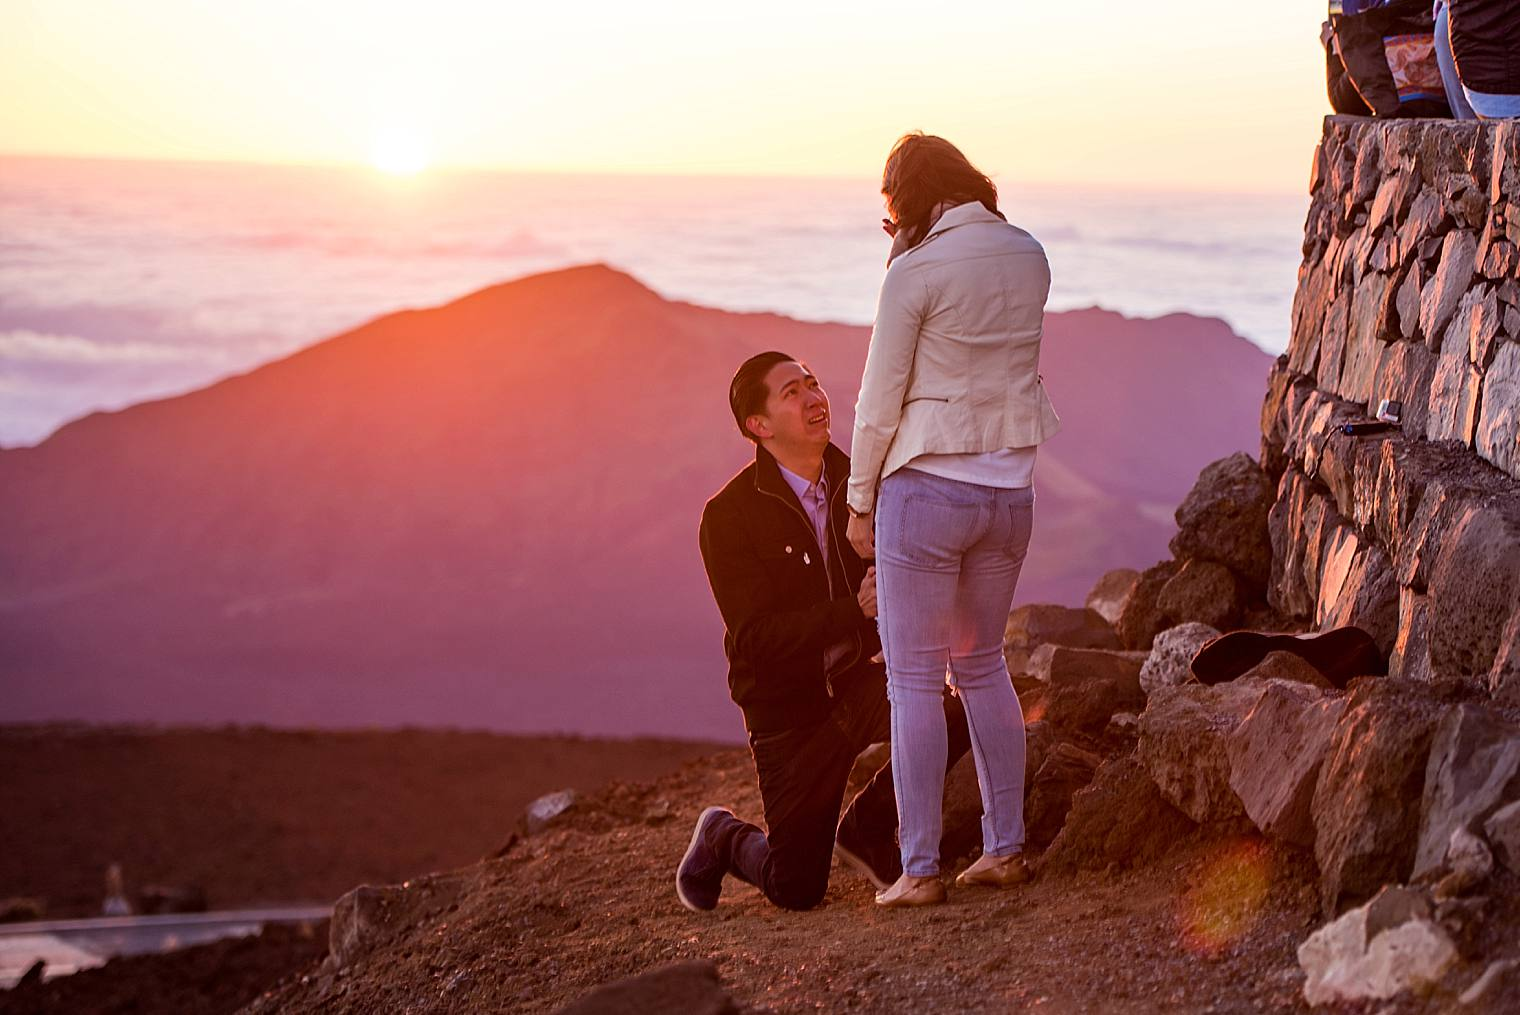 Al + Cristina  | Haleakala Sunrise Proposal in Maui, Hawaii